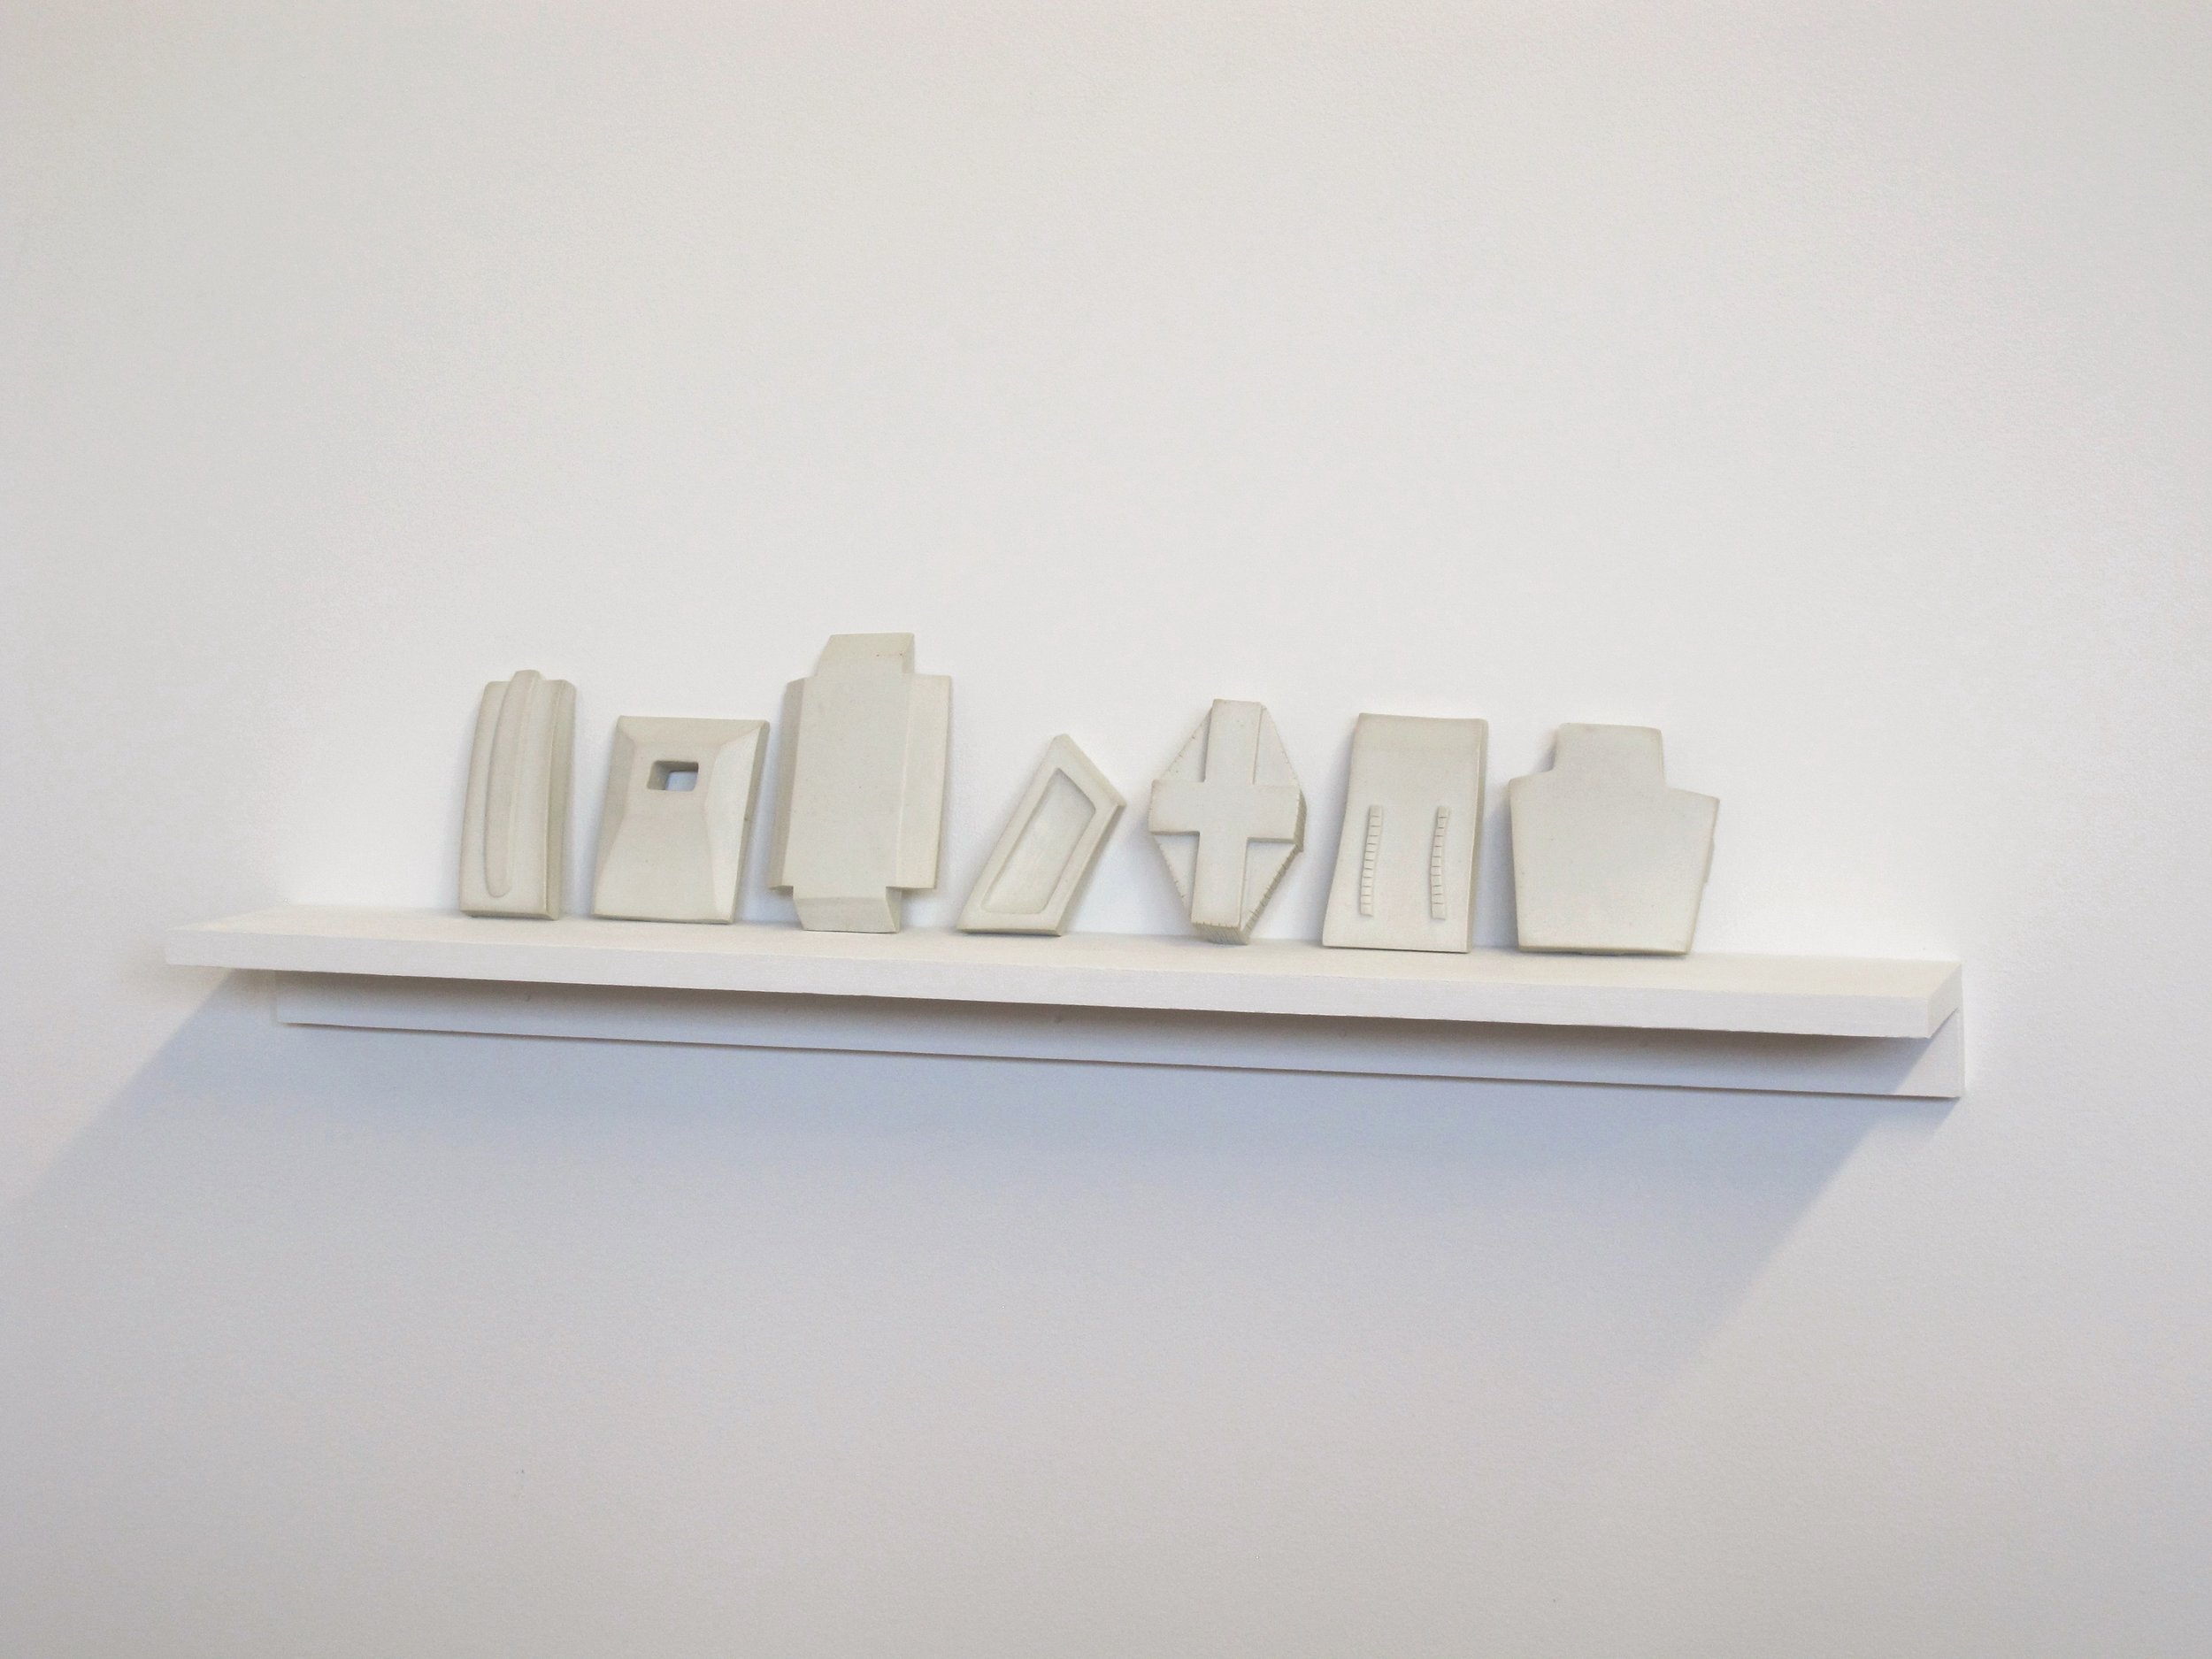 "Untitled, 2012, porcelain, 24 x 3 ½ x 6"" including shelf"